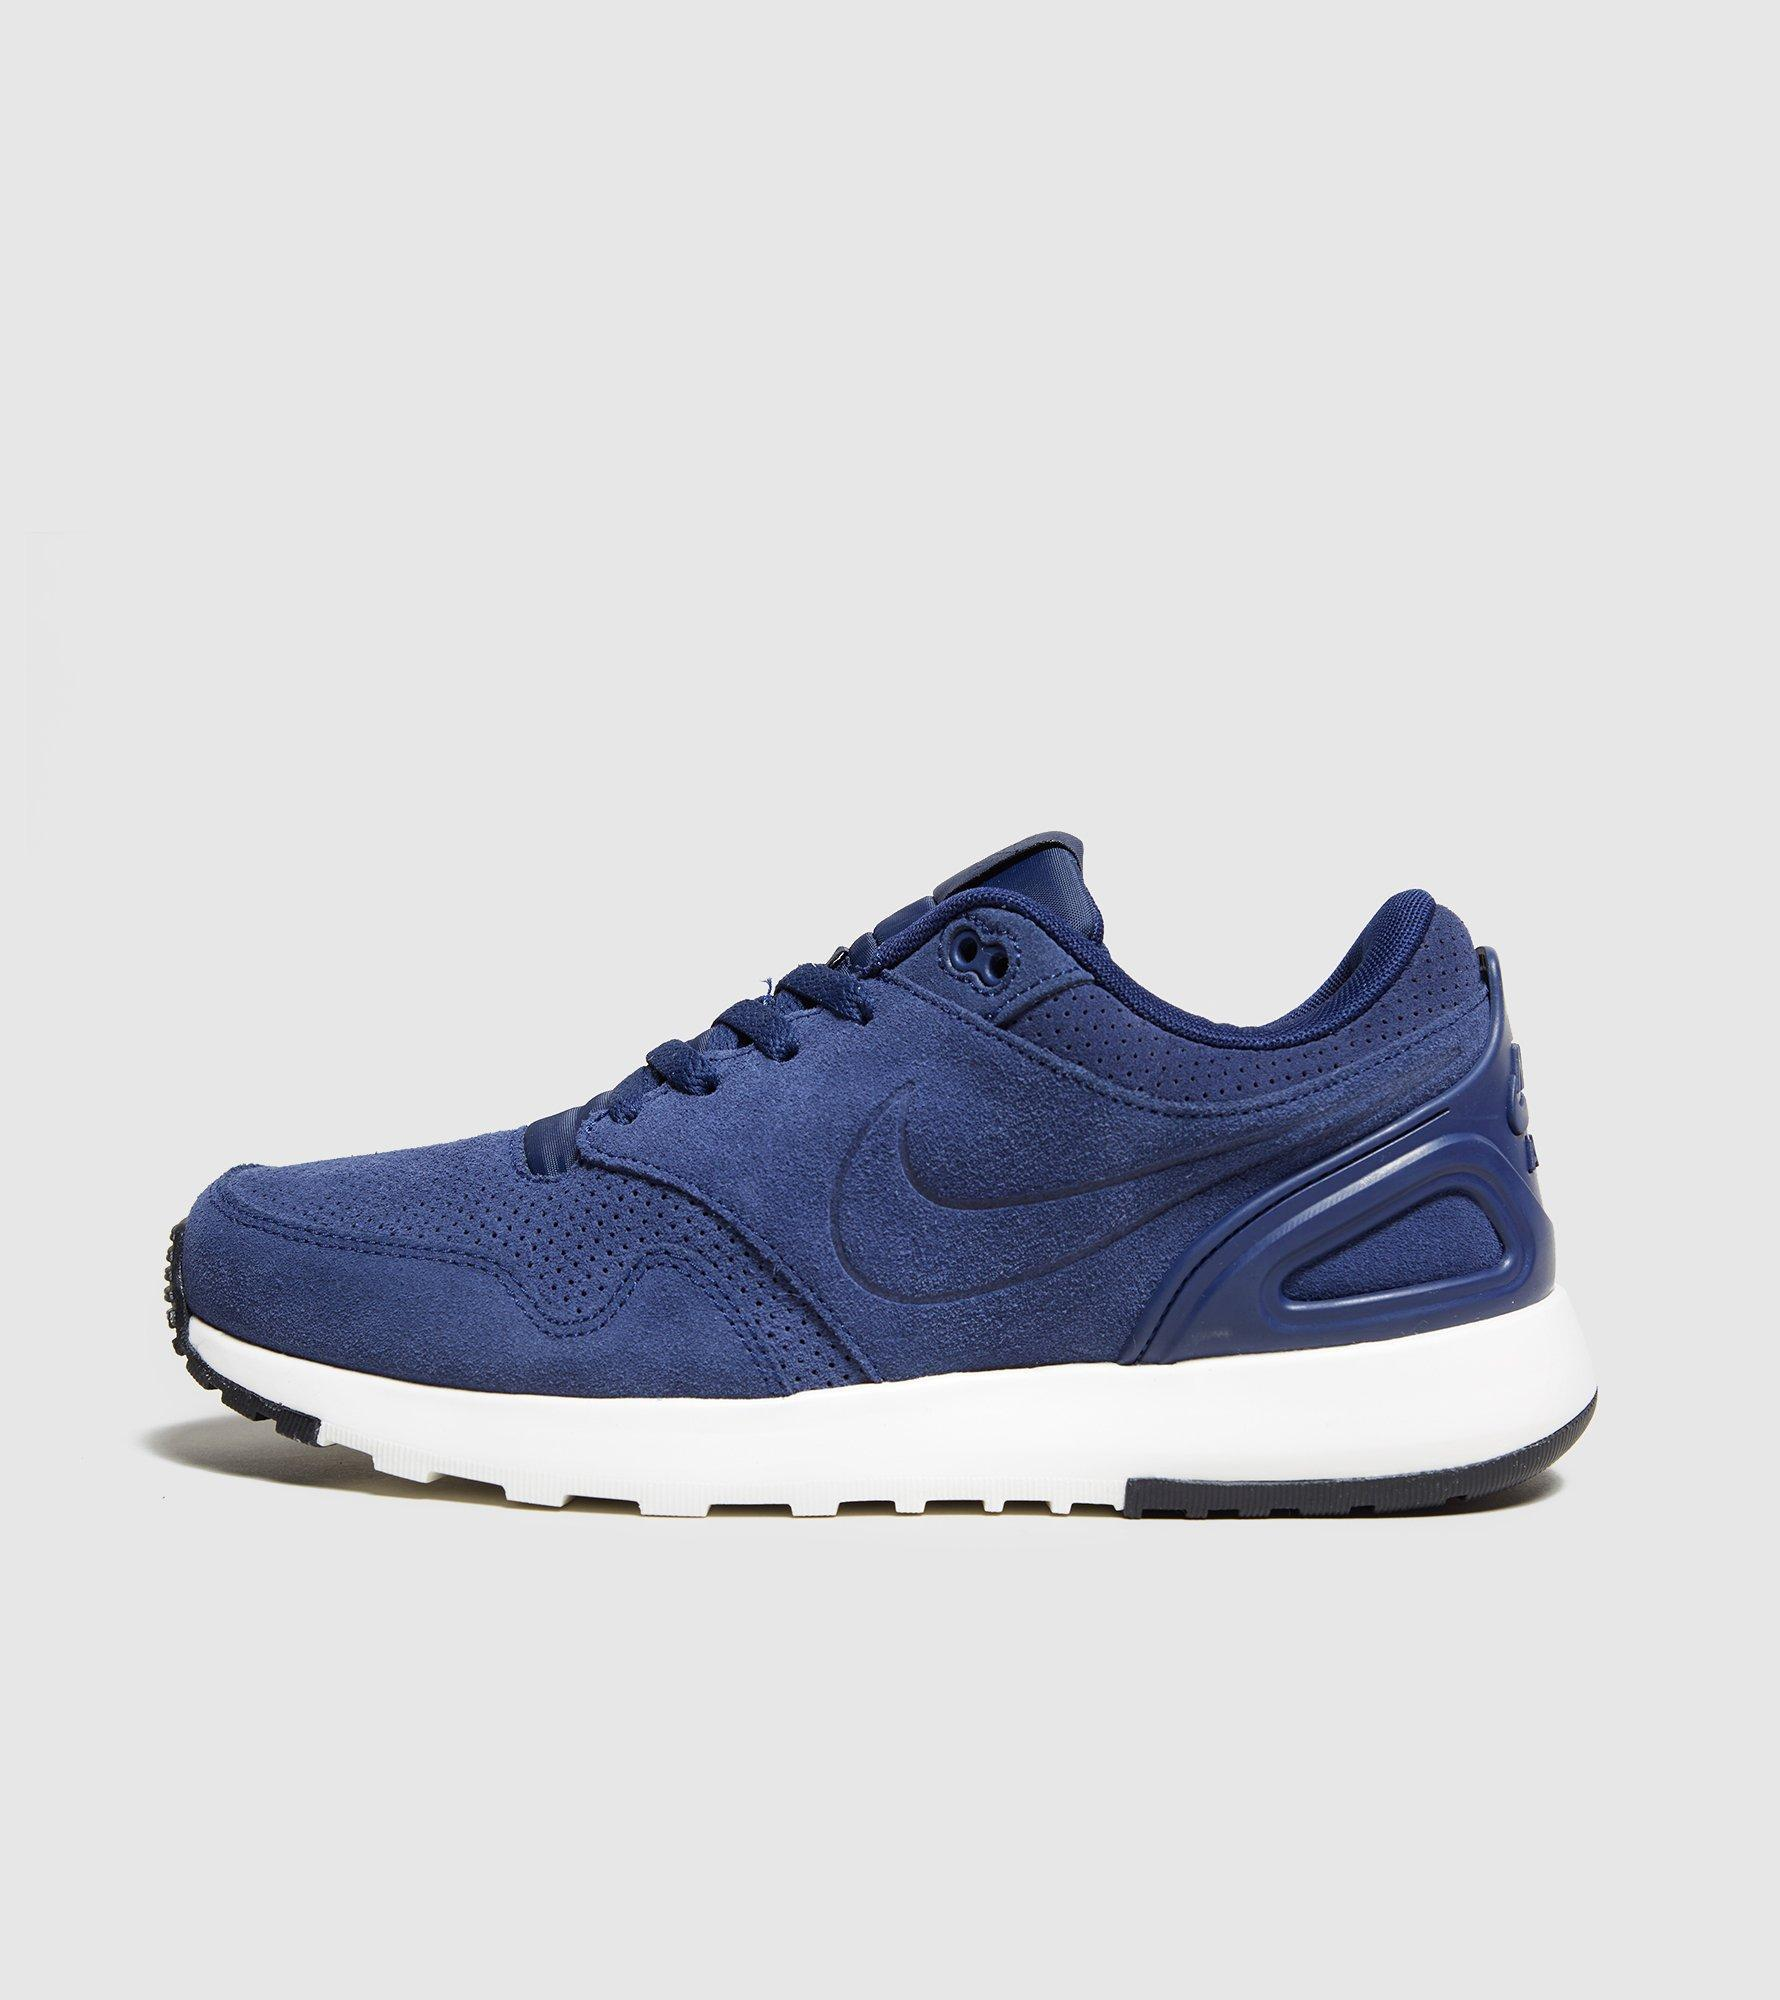 pretty nice 09157 8e96e ... discount code for 71fcc 14560 lyst nike air vibenna in blue for men  italy sale bb5c2